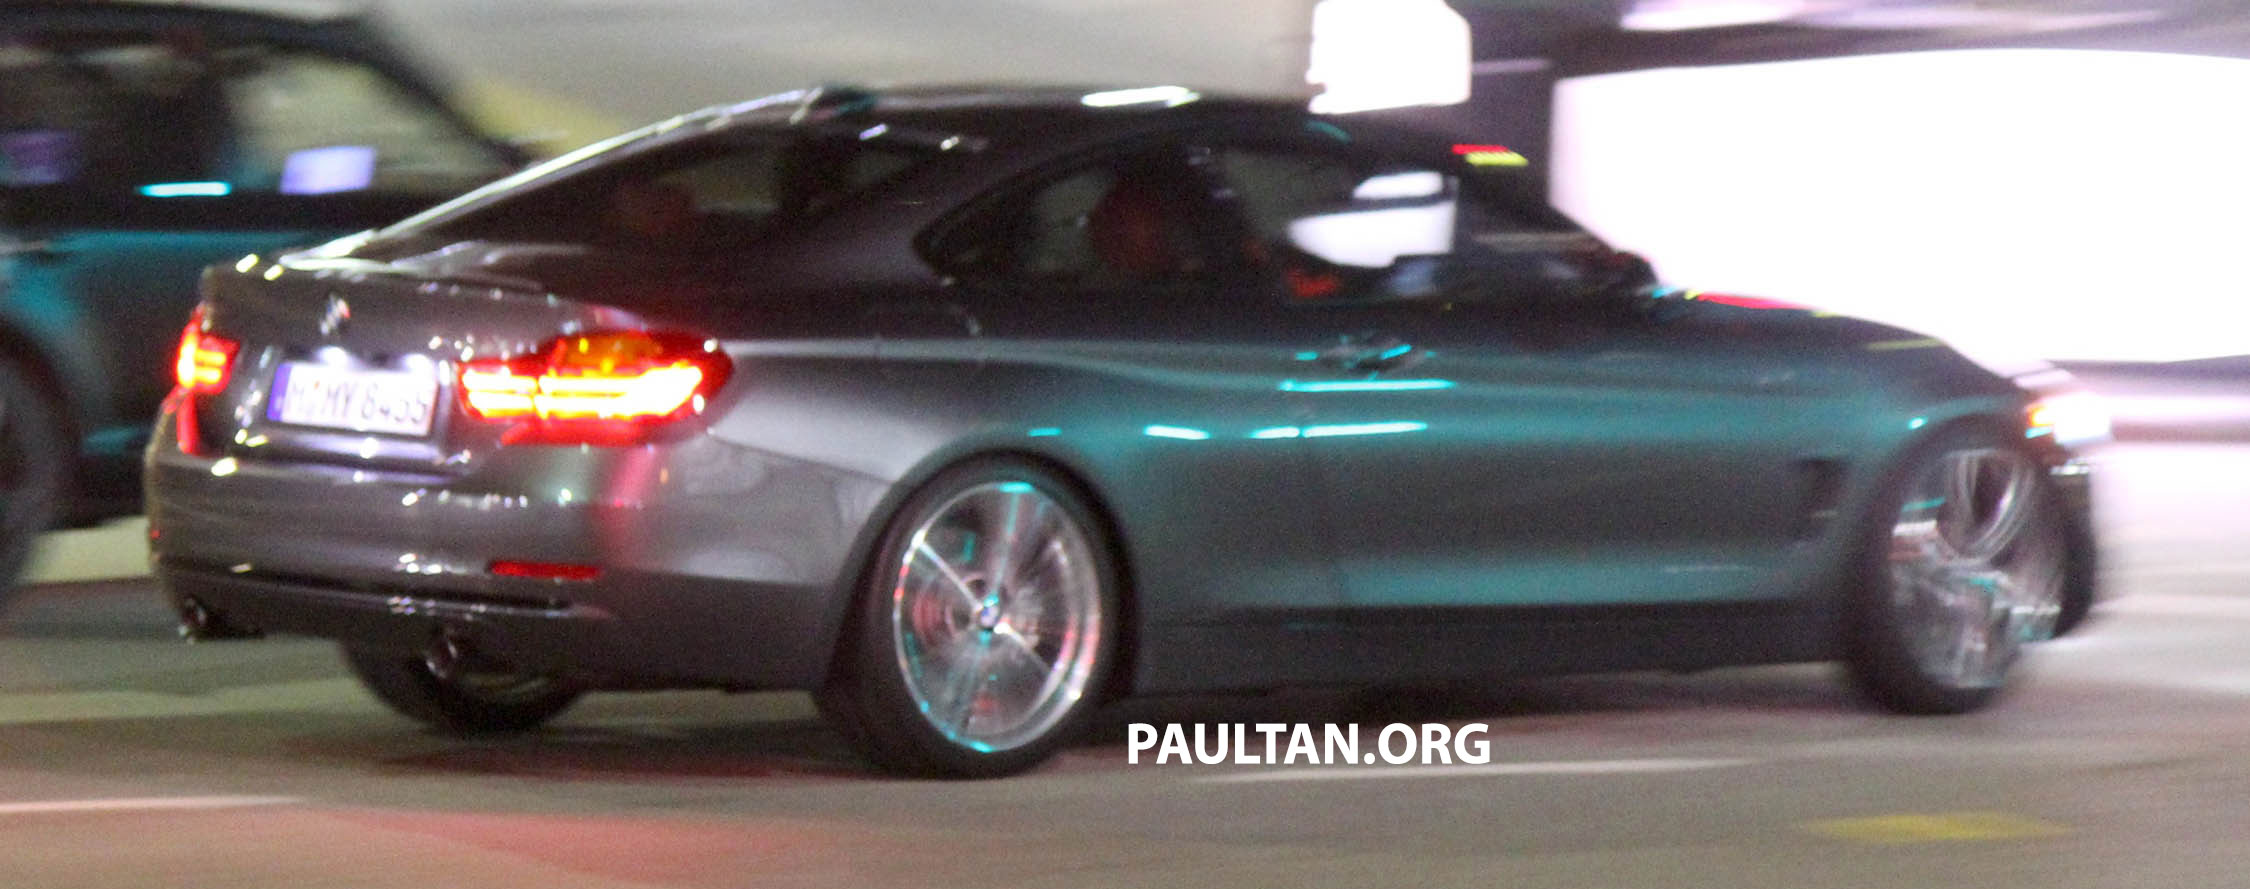 All Bmw Series >> BMW 4-Series Coupe production car revealed! Paul Tan - Image 163335